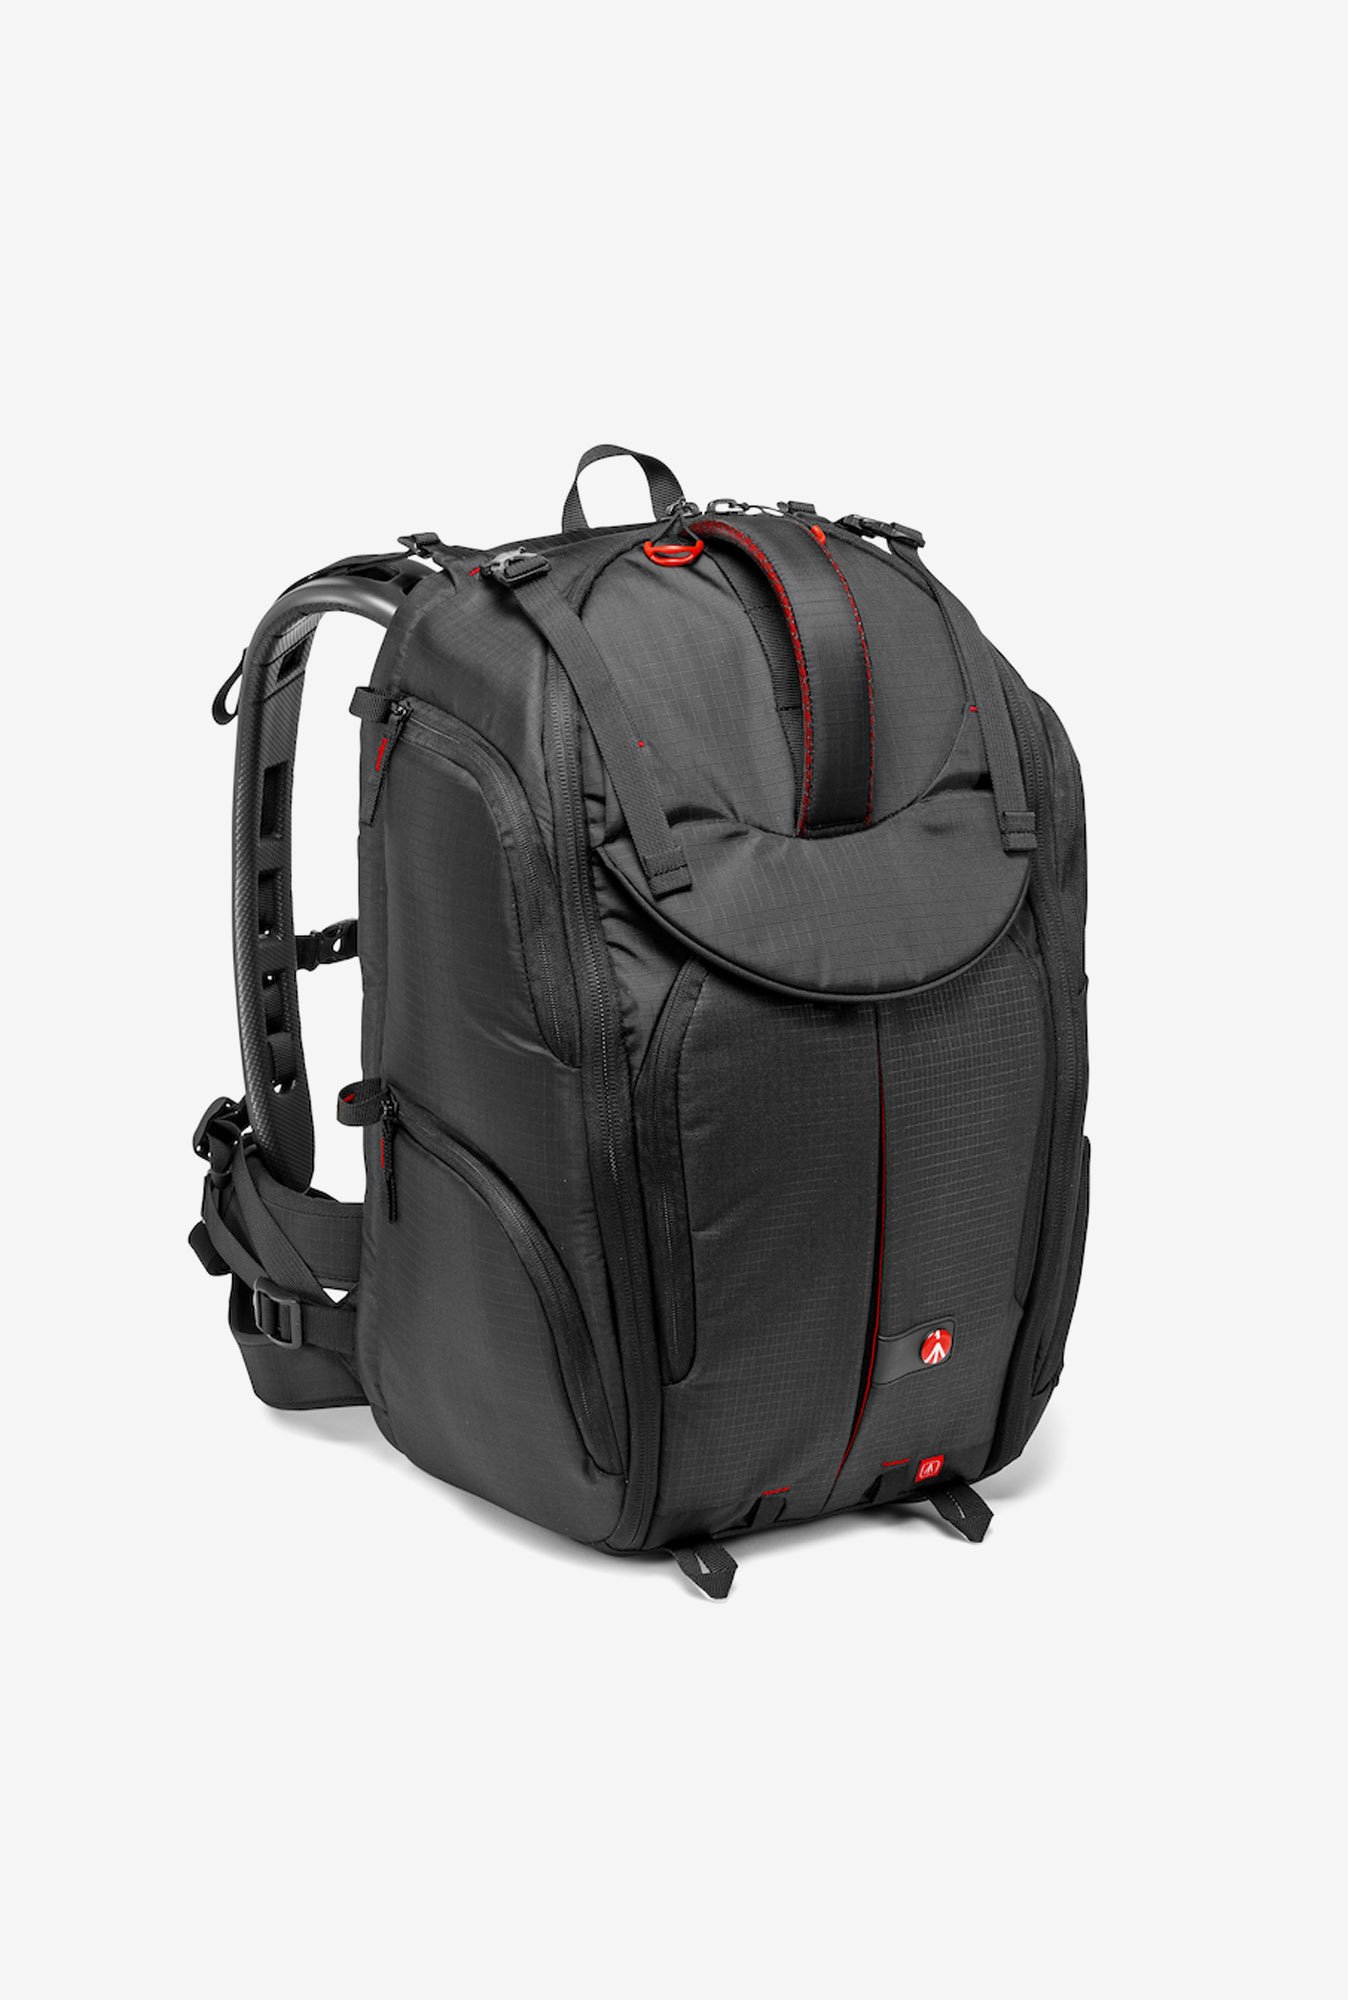 Manfrotto MB PL-PV-410 Camera Backpack Black